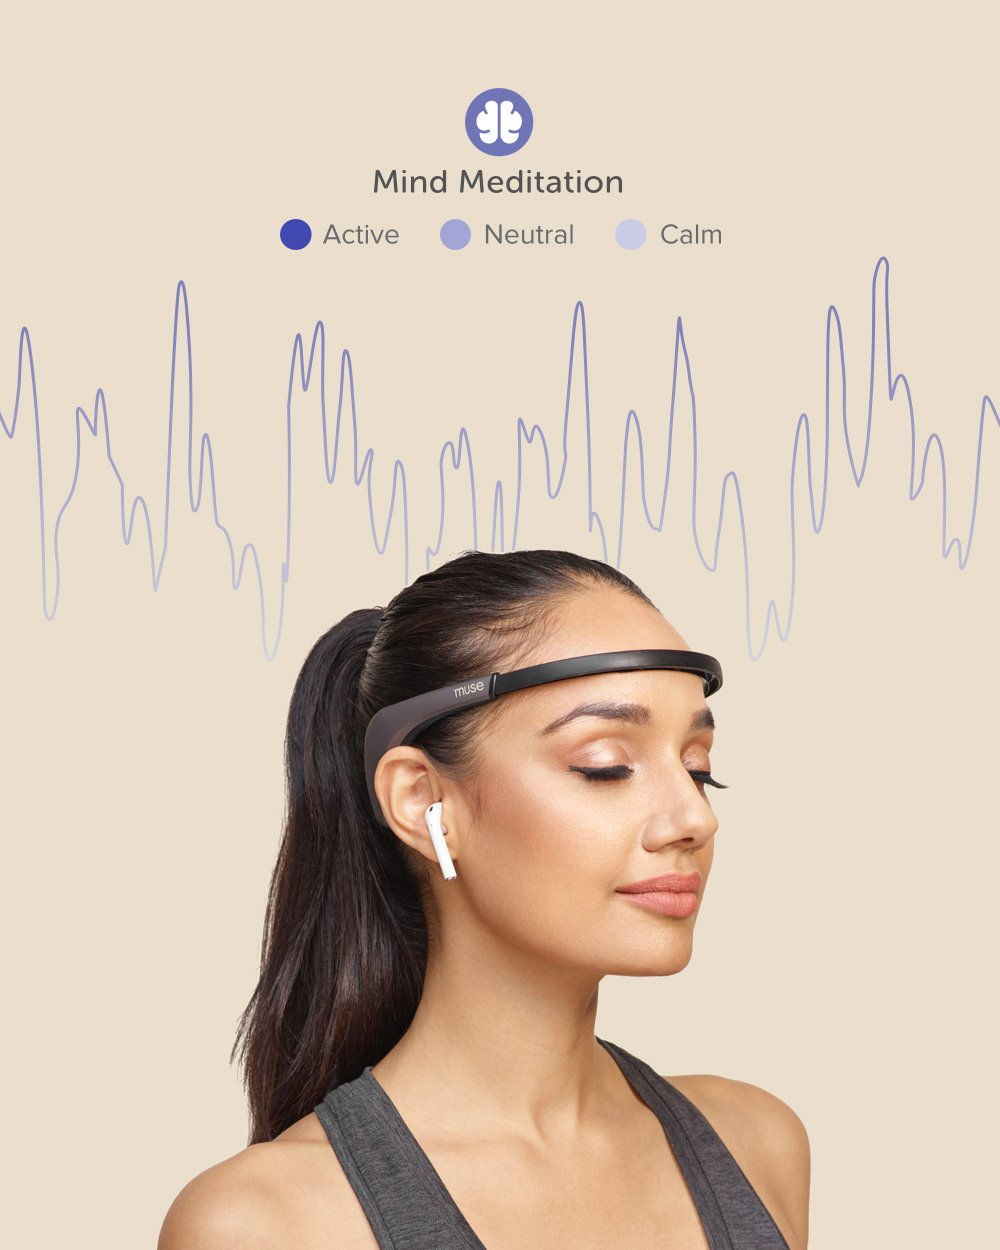 Review session data after each meditation